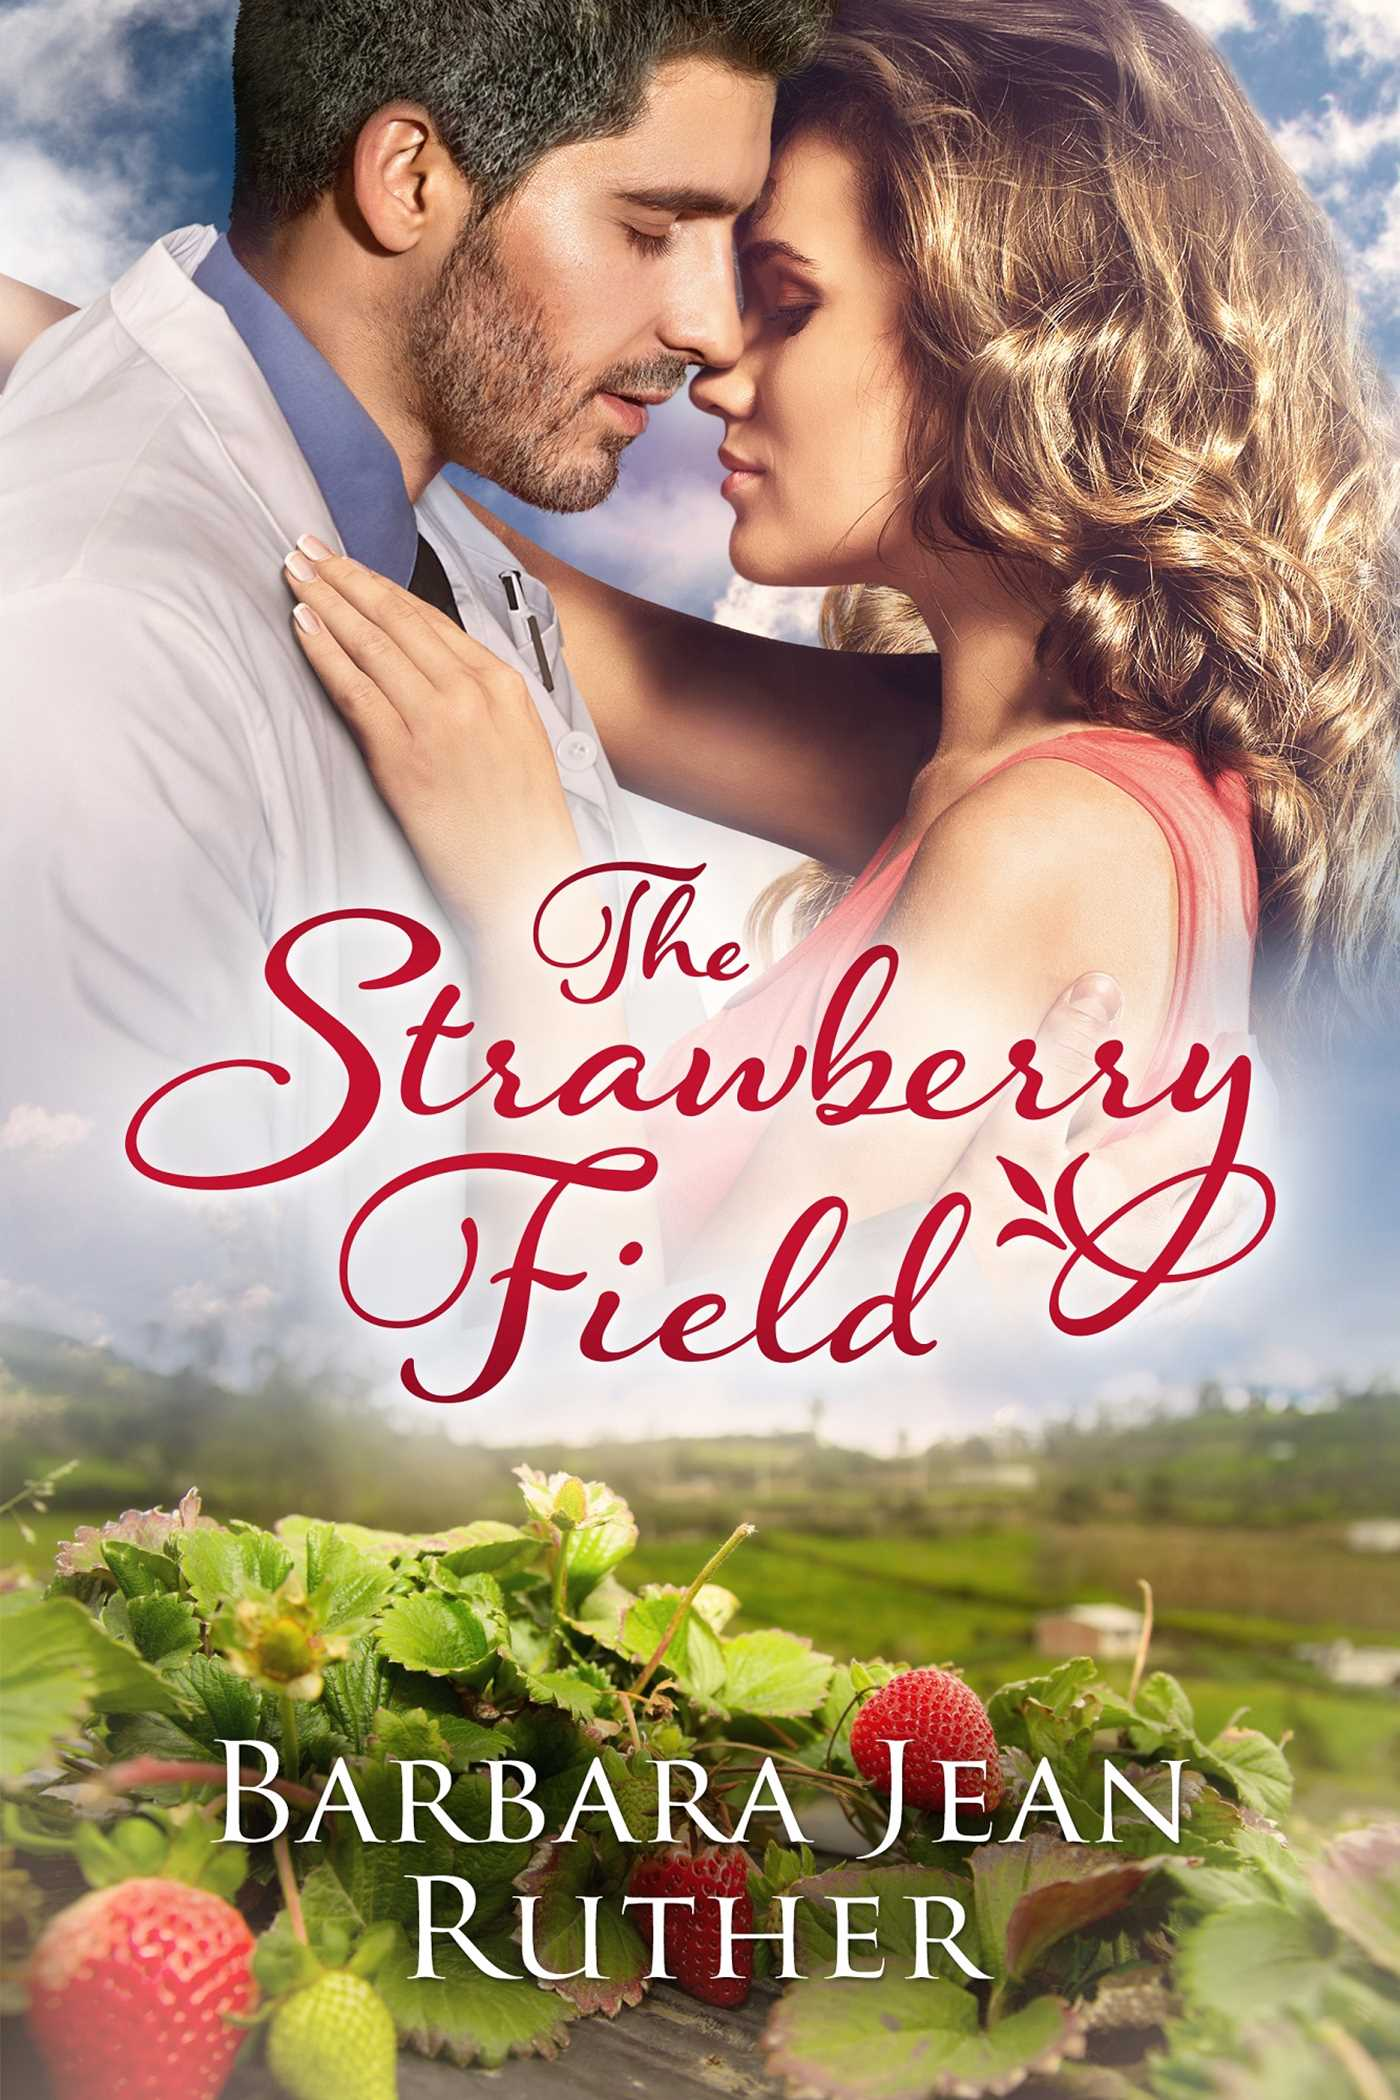 The strawberry field 9781682992135 hr